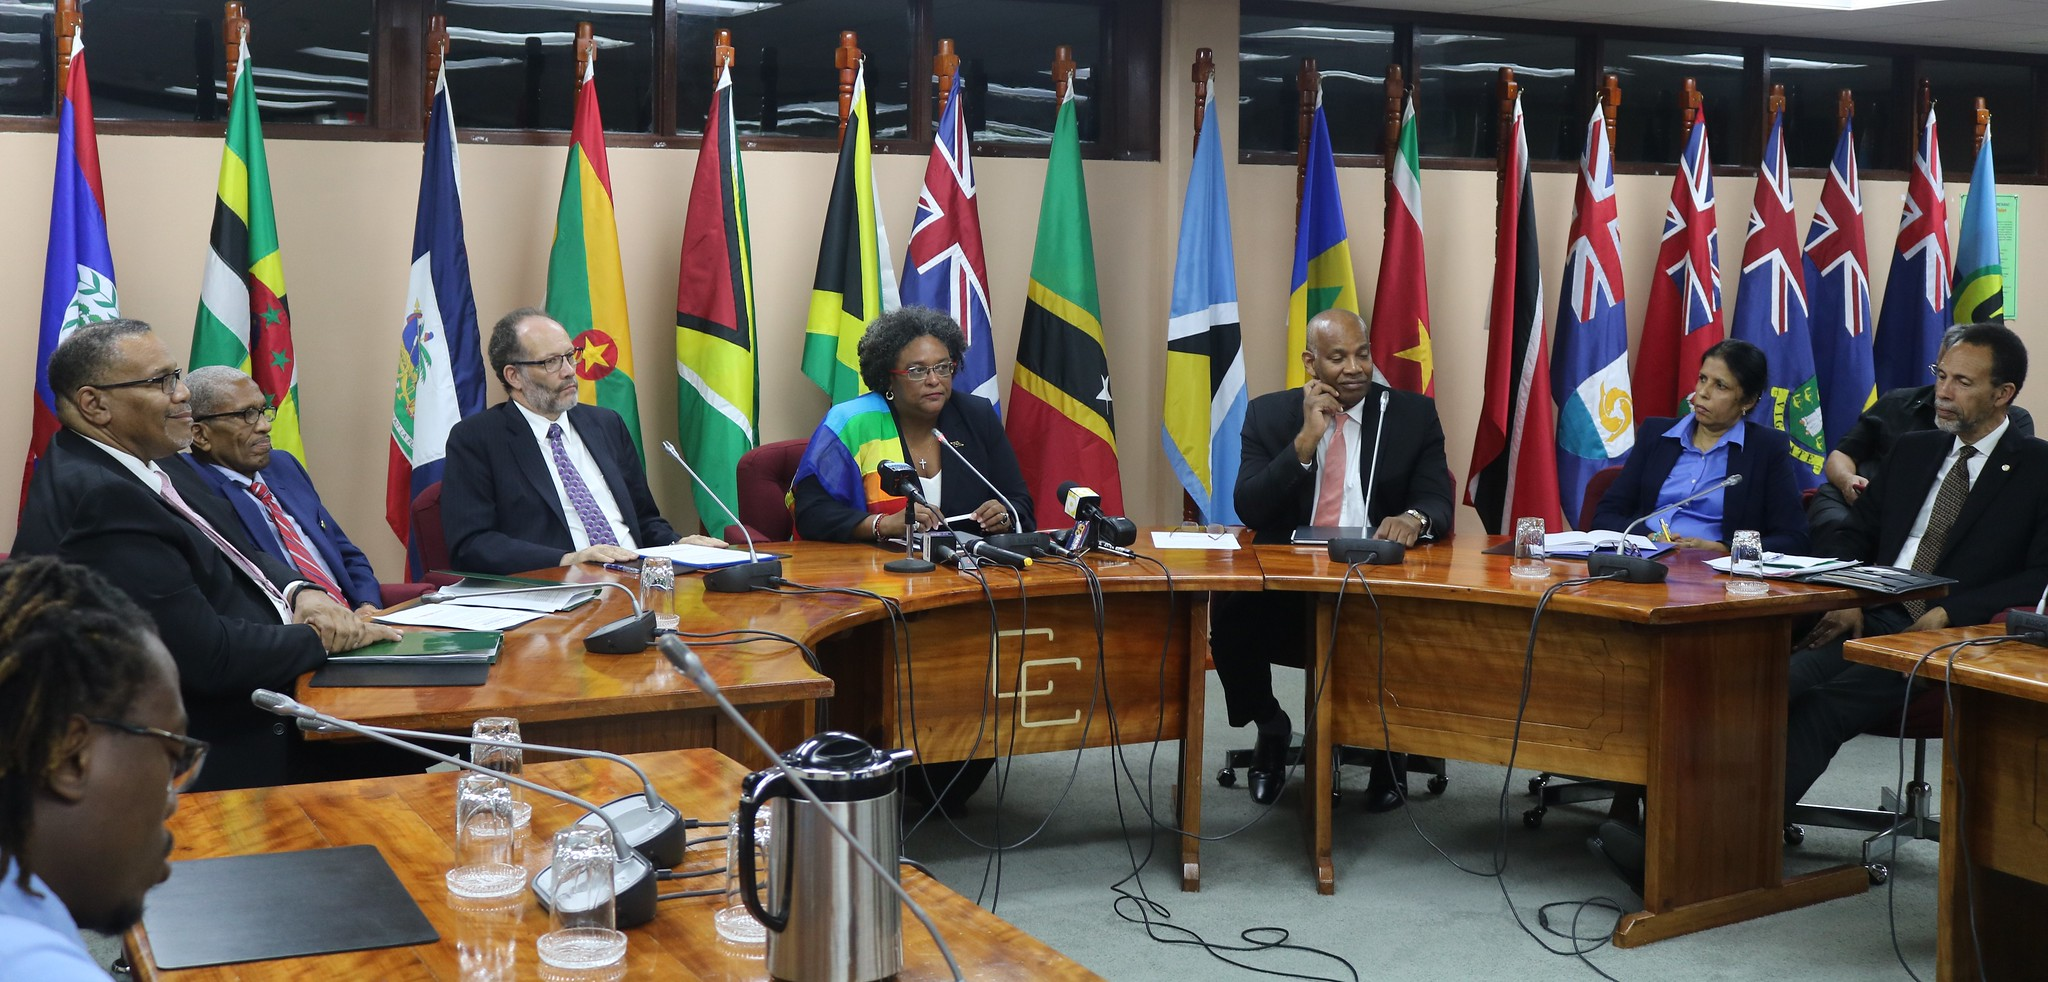 he Chairman, Secretary-General and senior Secretariat Officials at the Press Conference